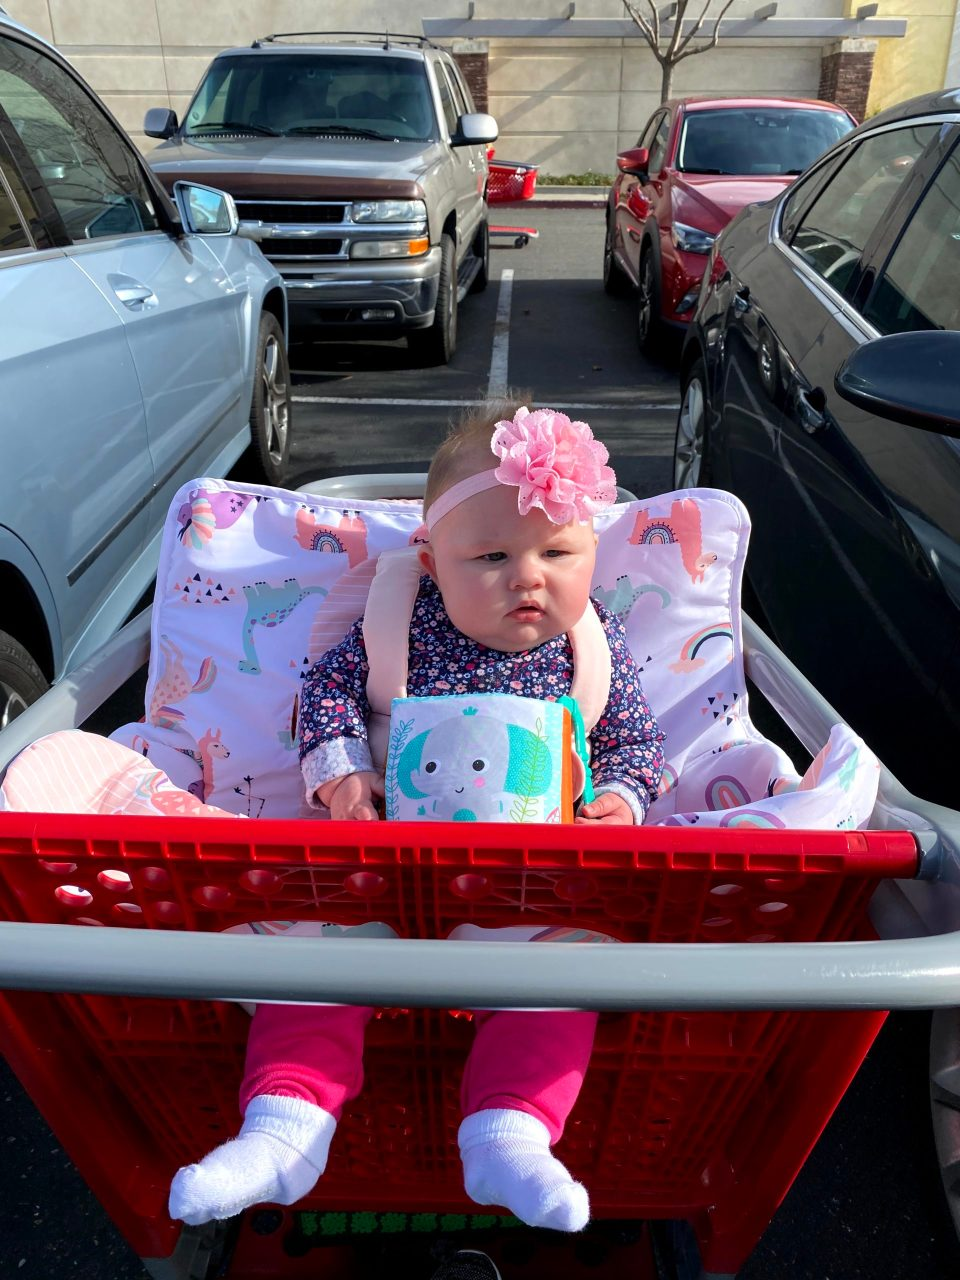 Lily in the shopping cart at Target